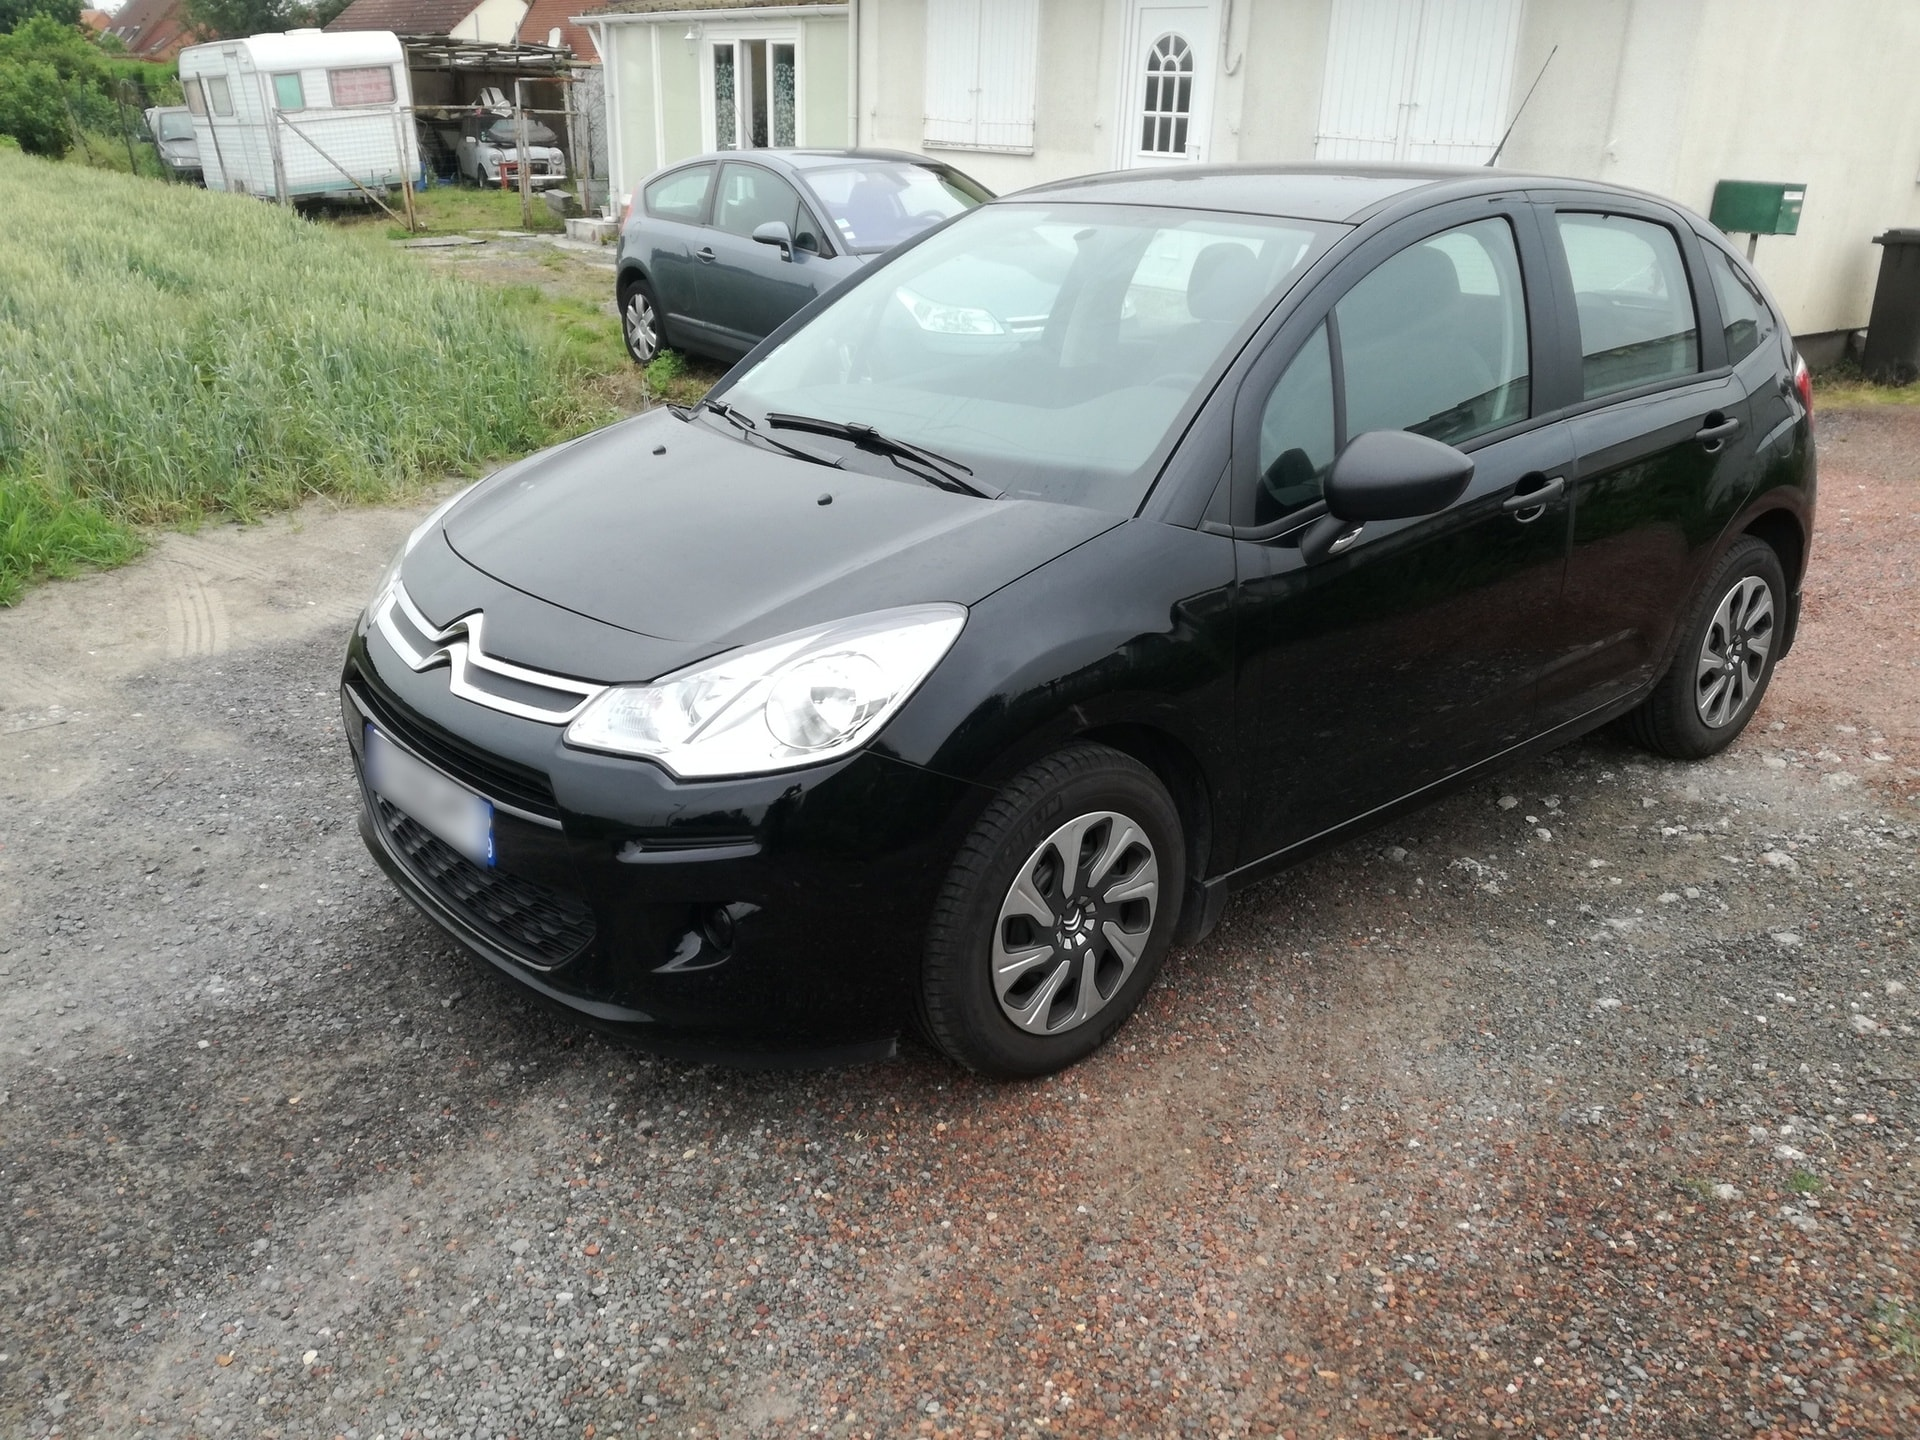 CITROEN C3 GENERATION-II 1.0 PURETECH 70 ATTRACTION - Carverntura